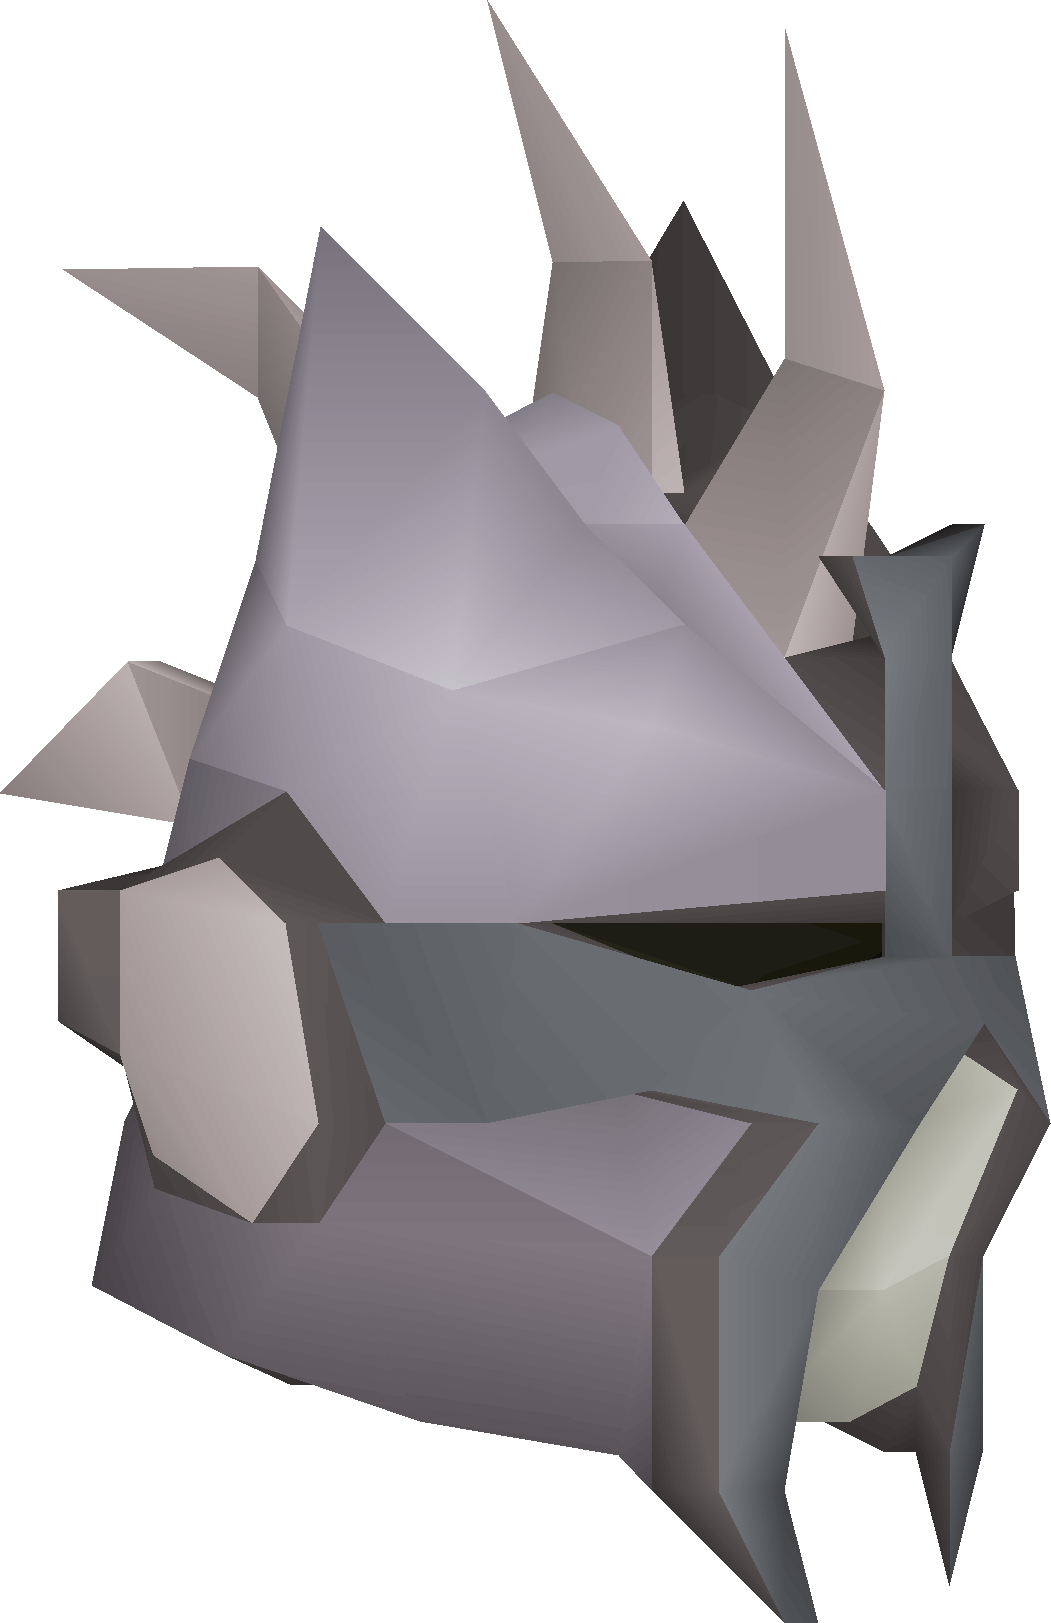 osrs nightmare zone guide for points